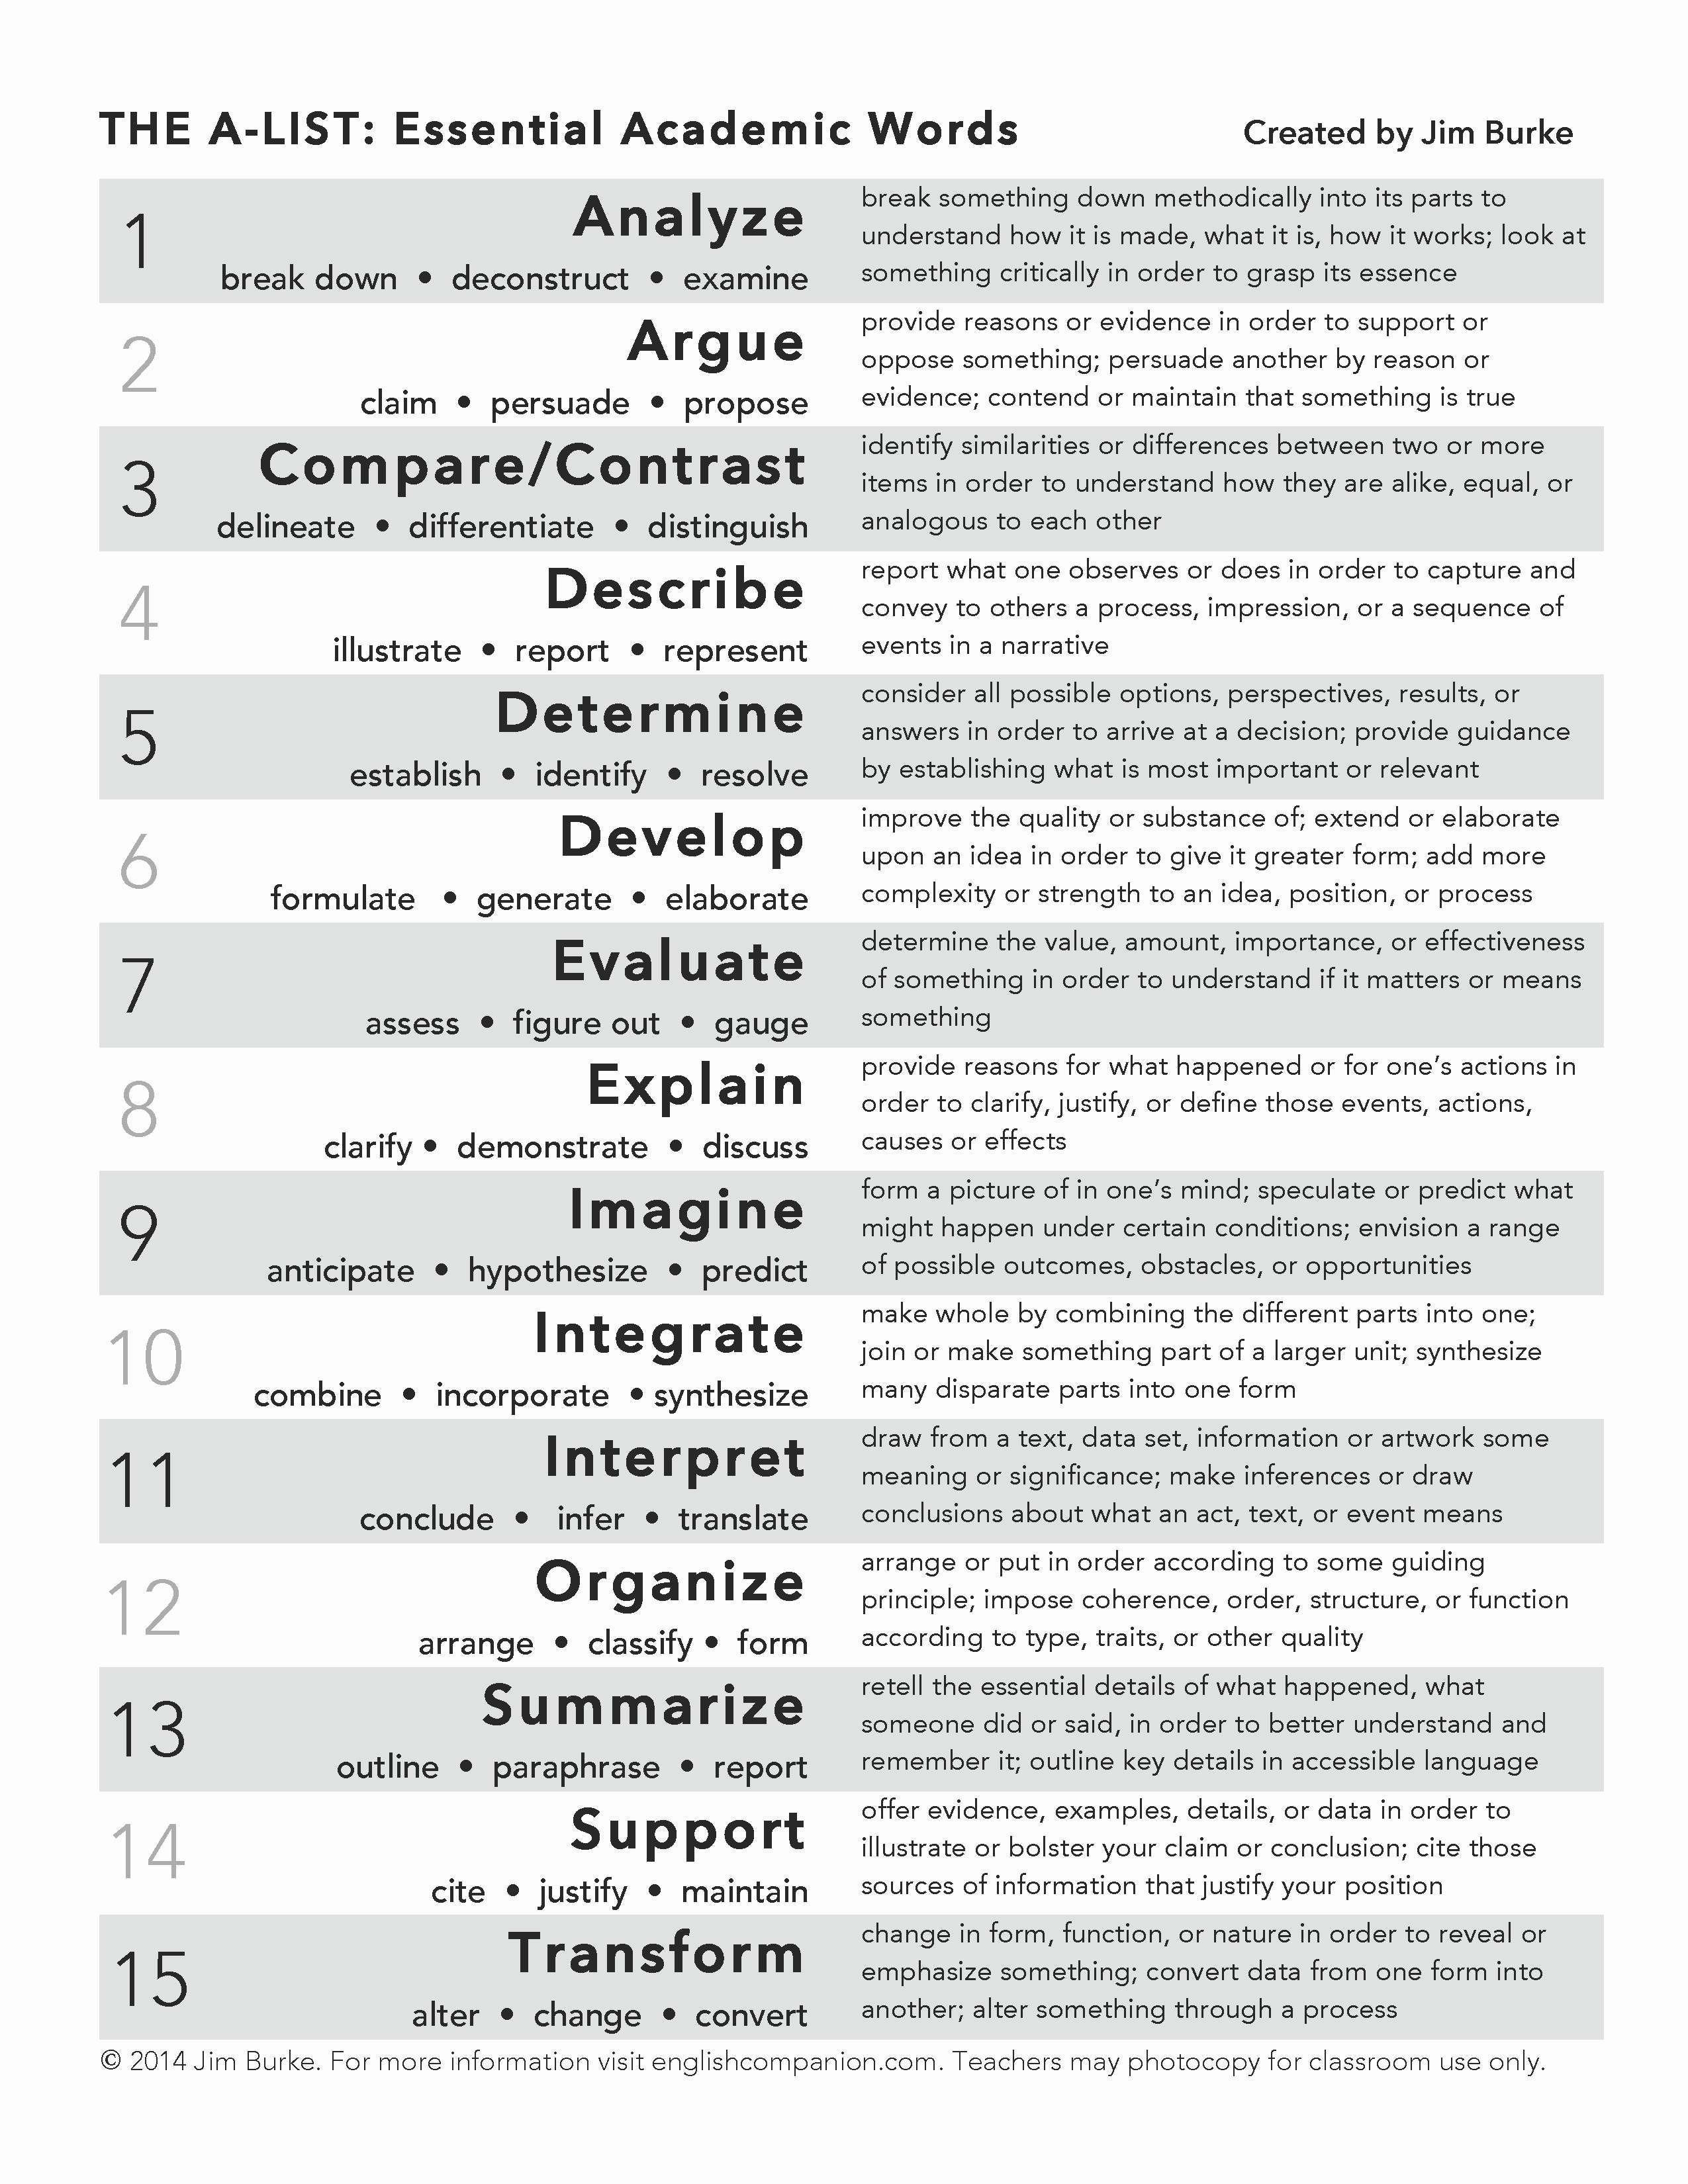 Collaborated Synonym - 23 Collaborate Synonym Resume